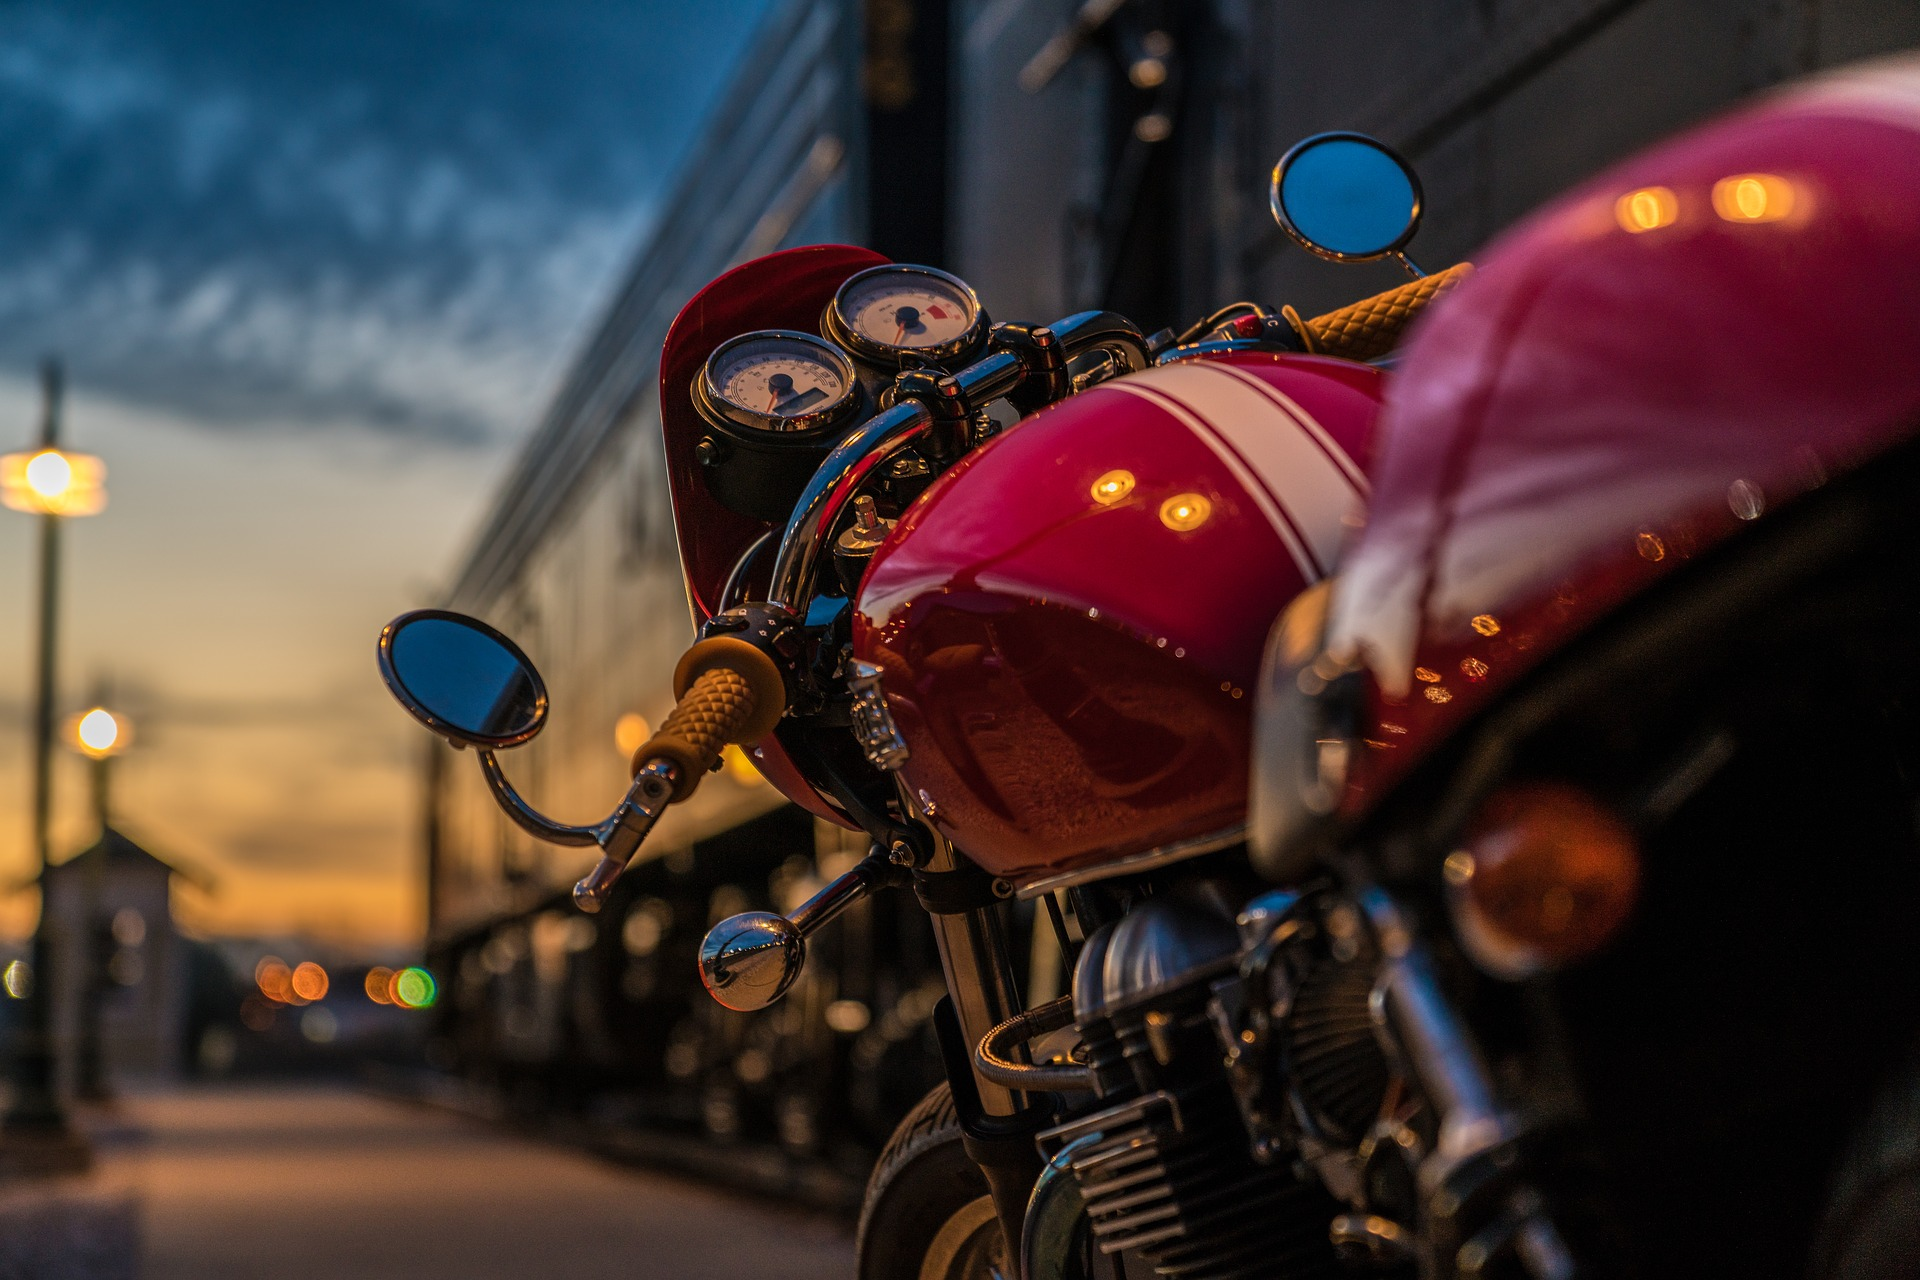 red motorcycle at night